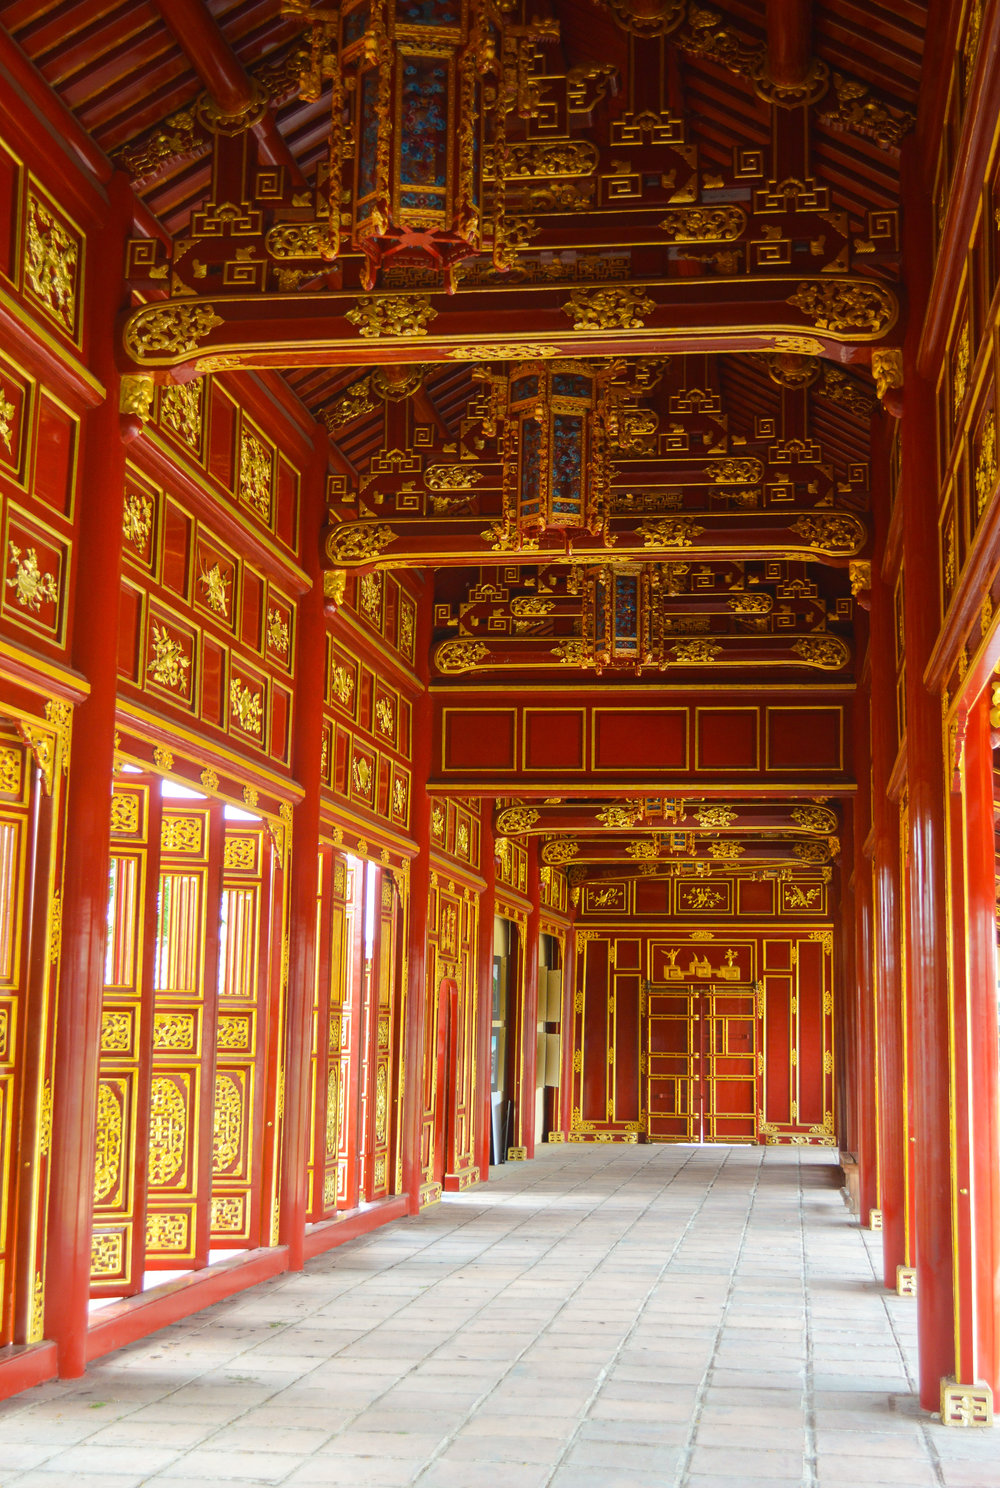 Restored corridors within the Hue monument complex